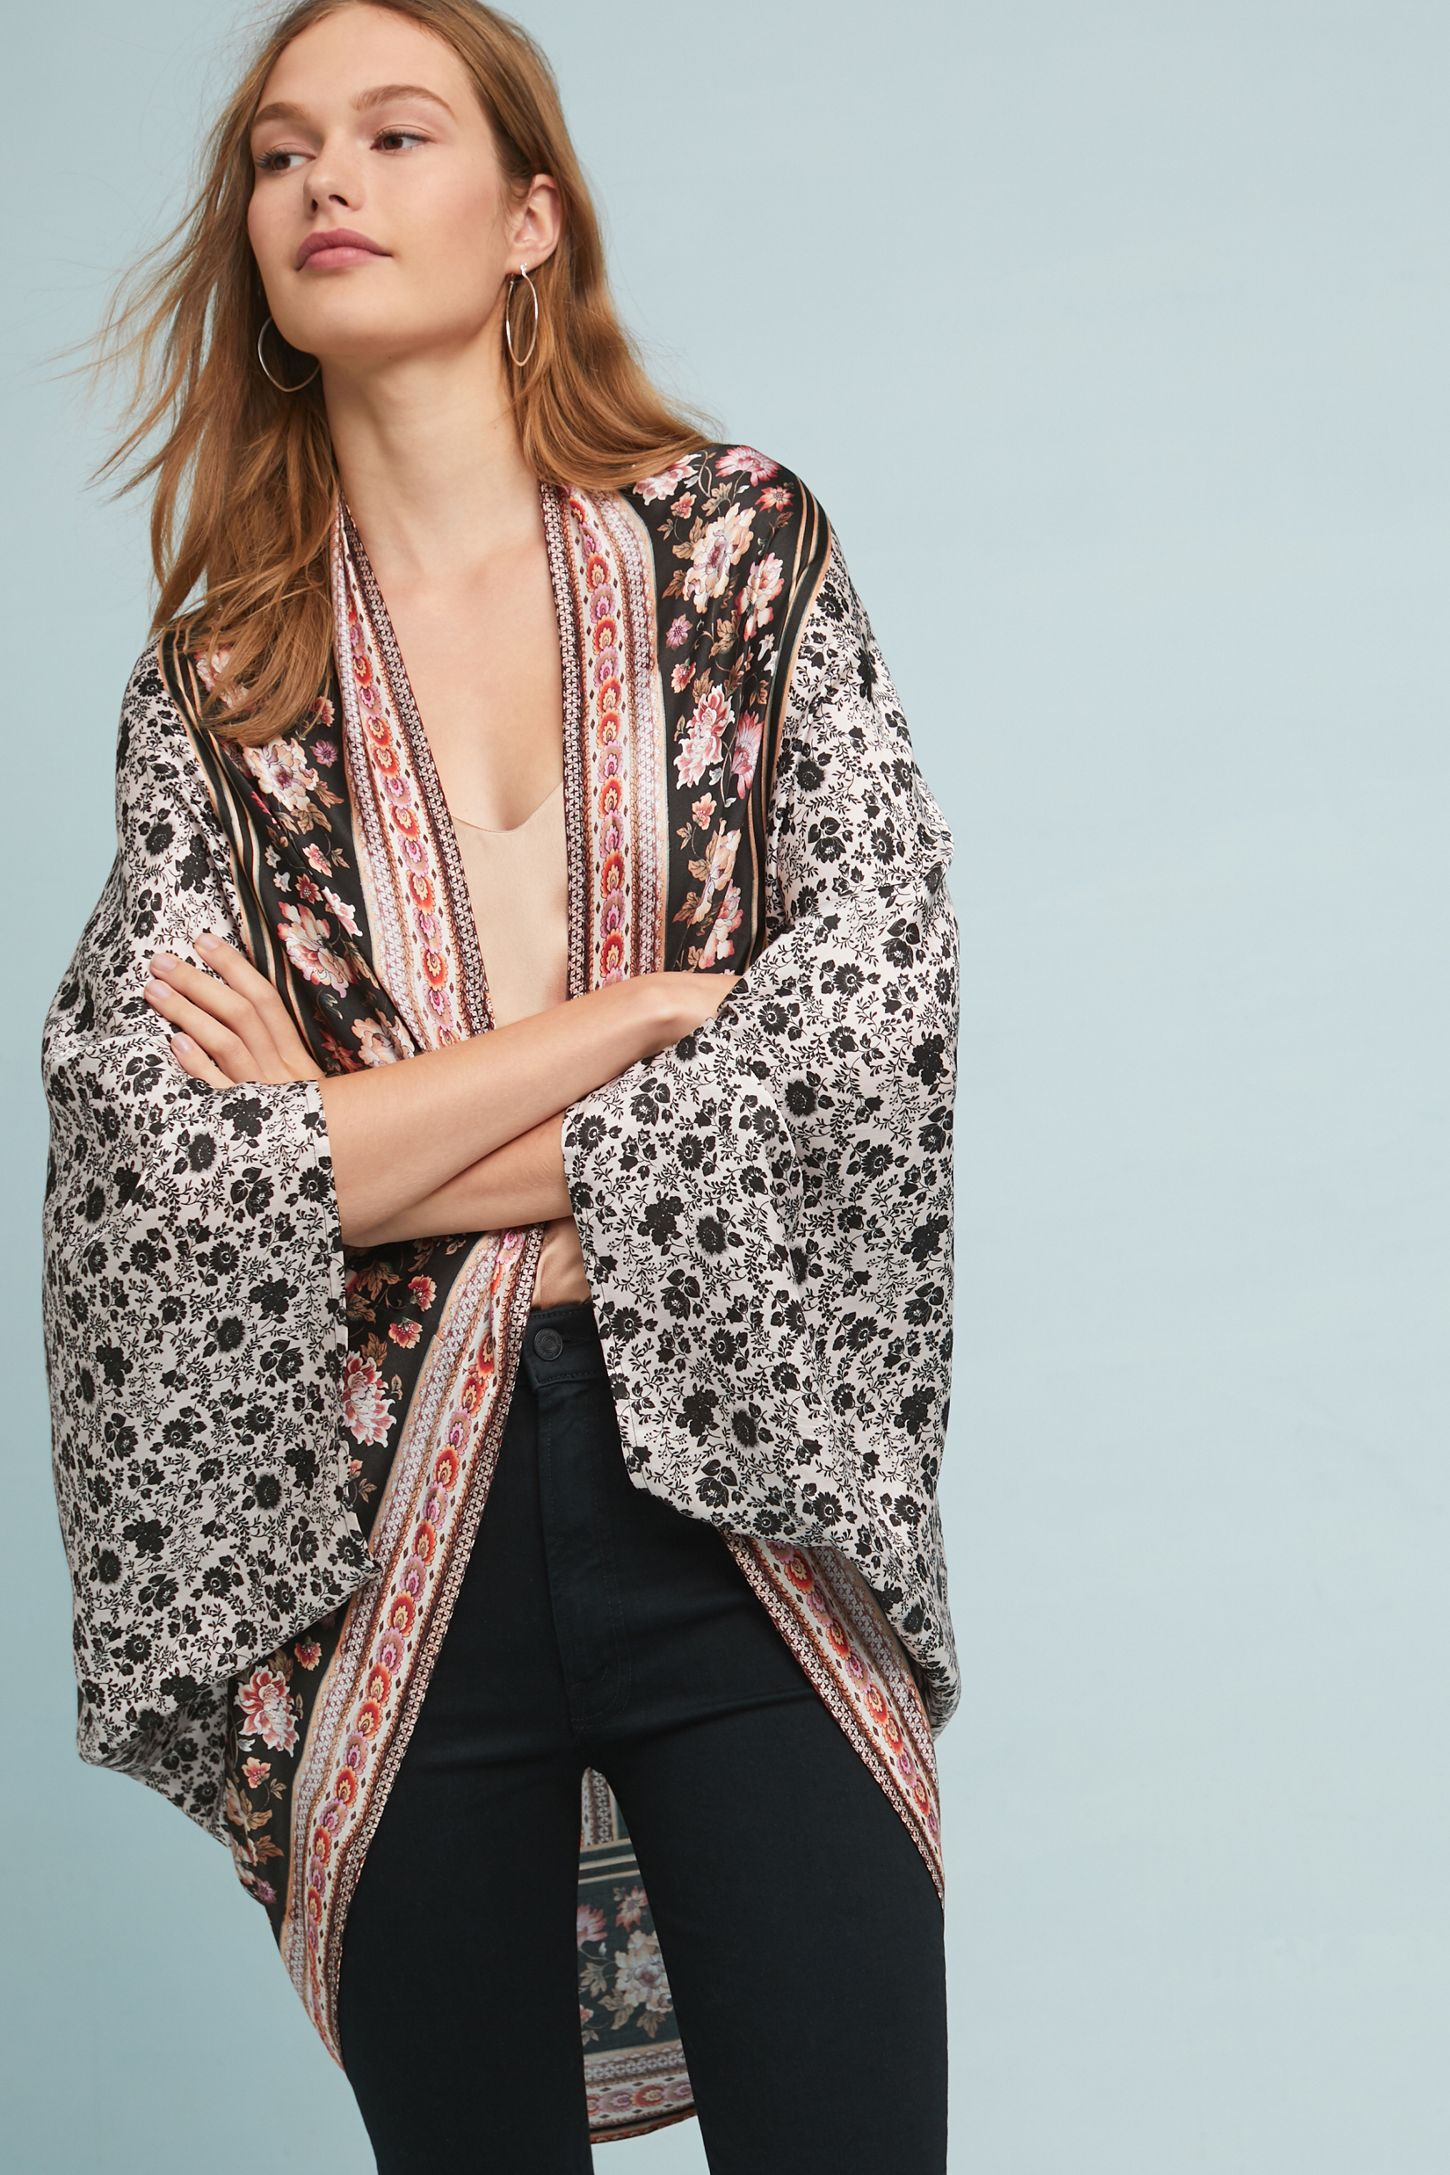 e67249c5e96 Slide View: 4: Kachel Mirrored Floral-Silk Kimono | Boho dreams ...